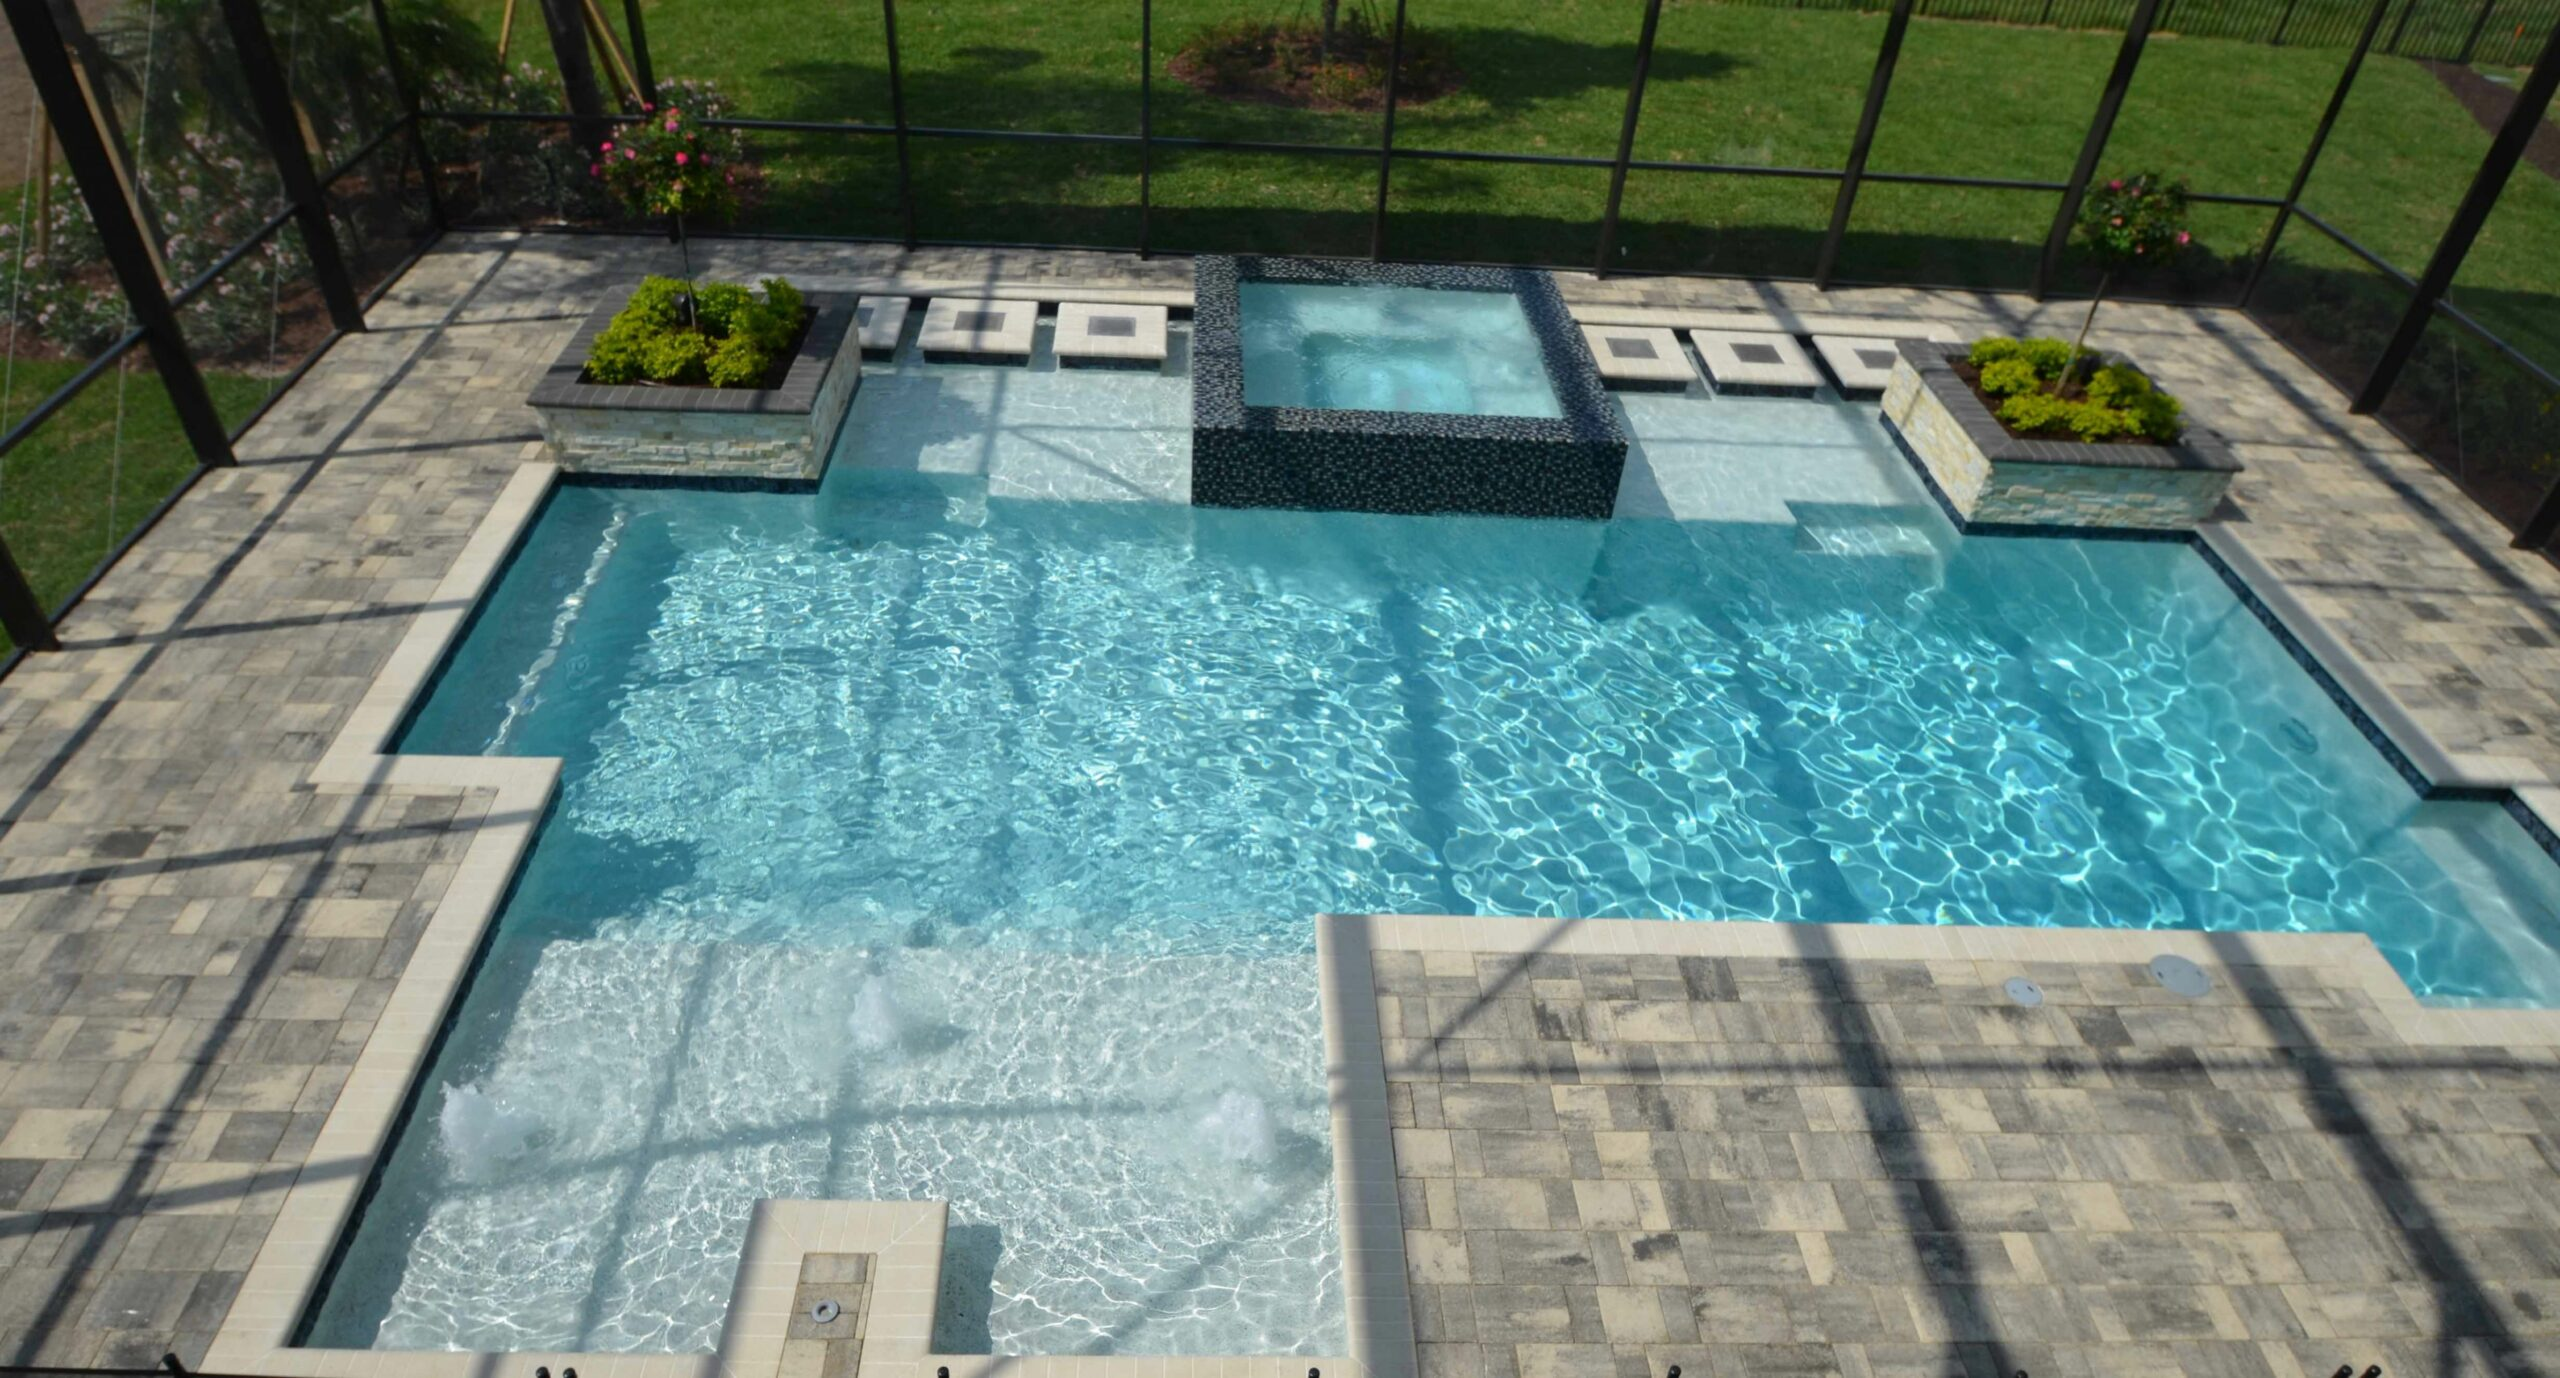 11 Low Maintenance Landscaping Ideas for Enclosed Pool Areas | All ...